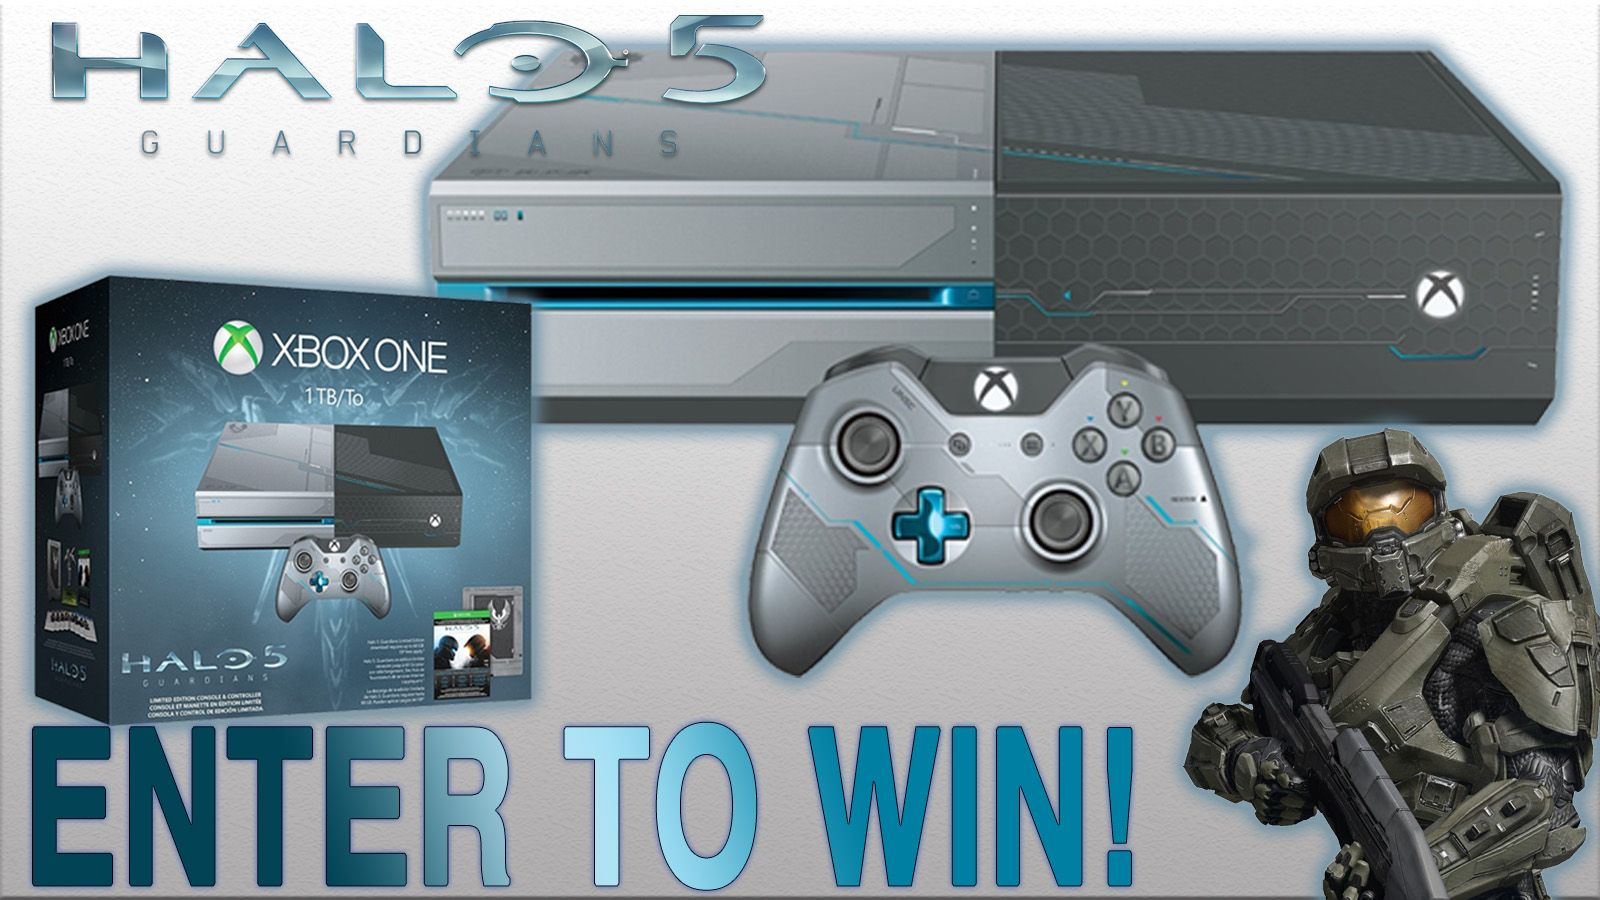 Enter for a chance to win a Halo 5 Guardians limited